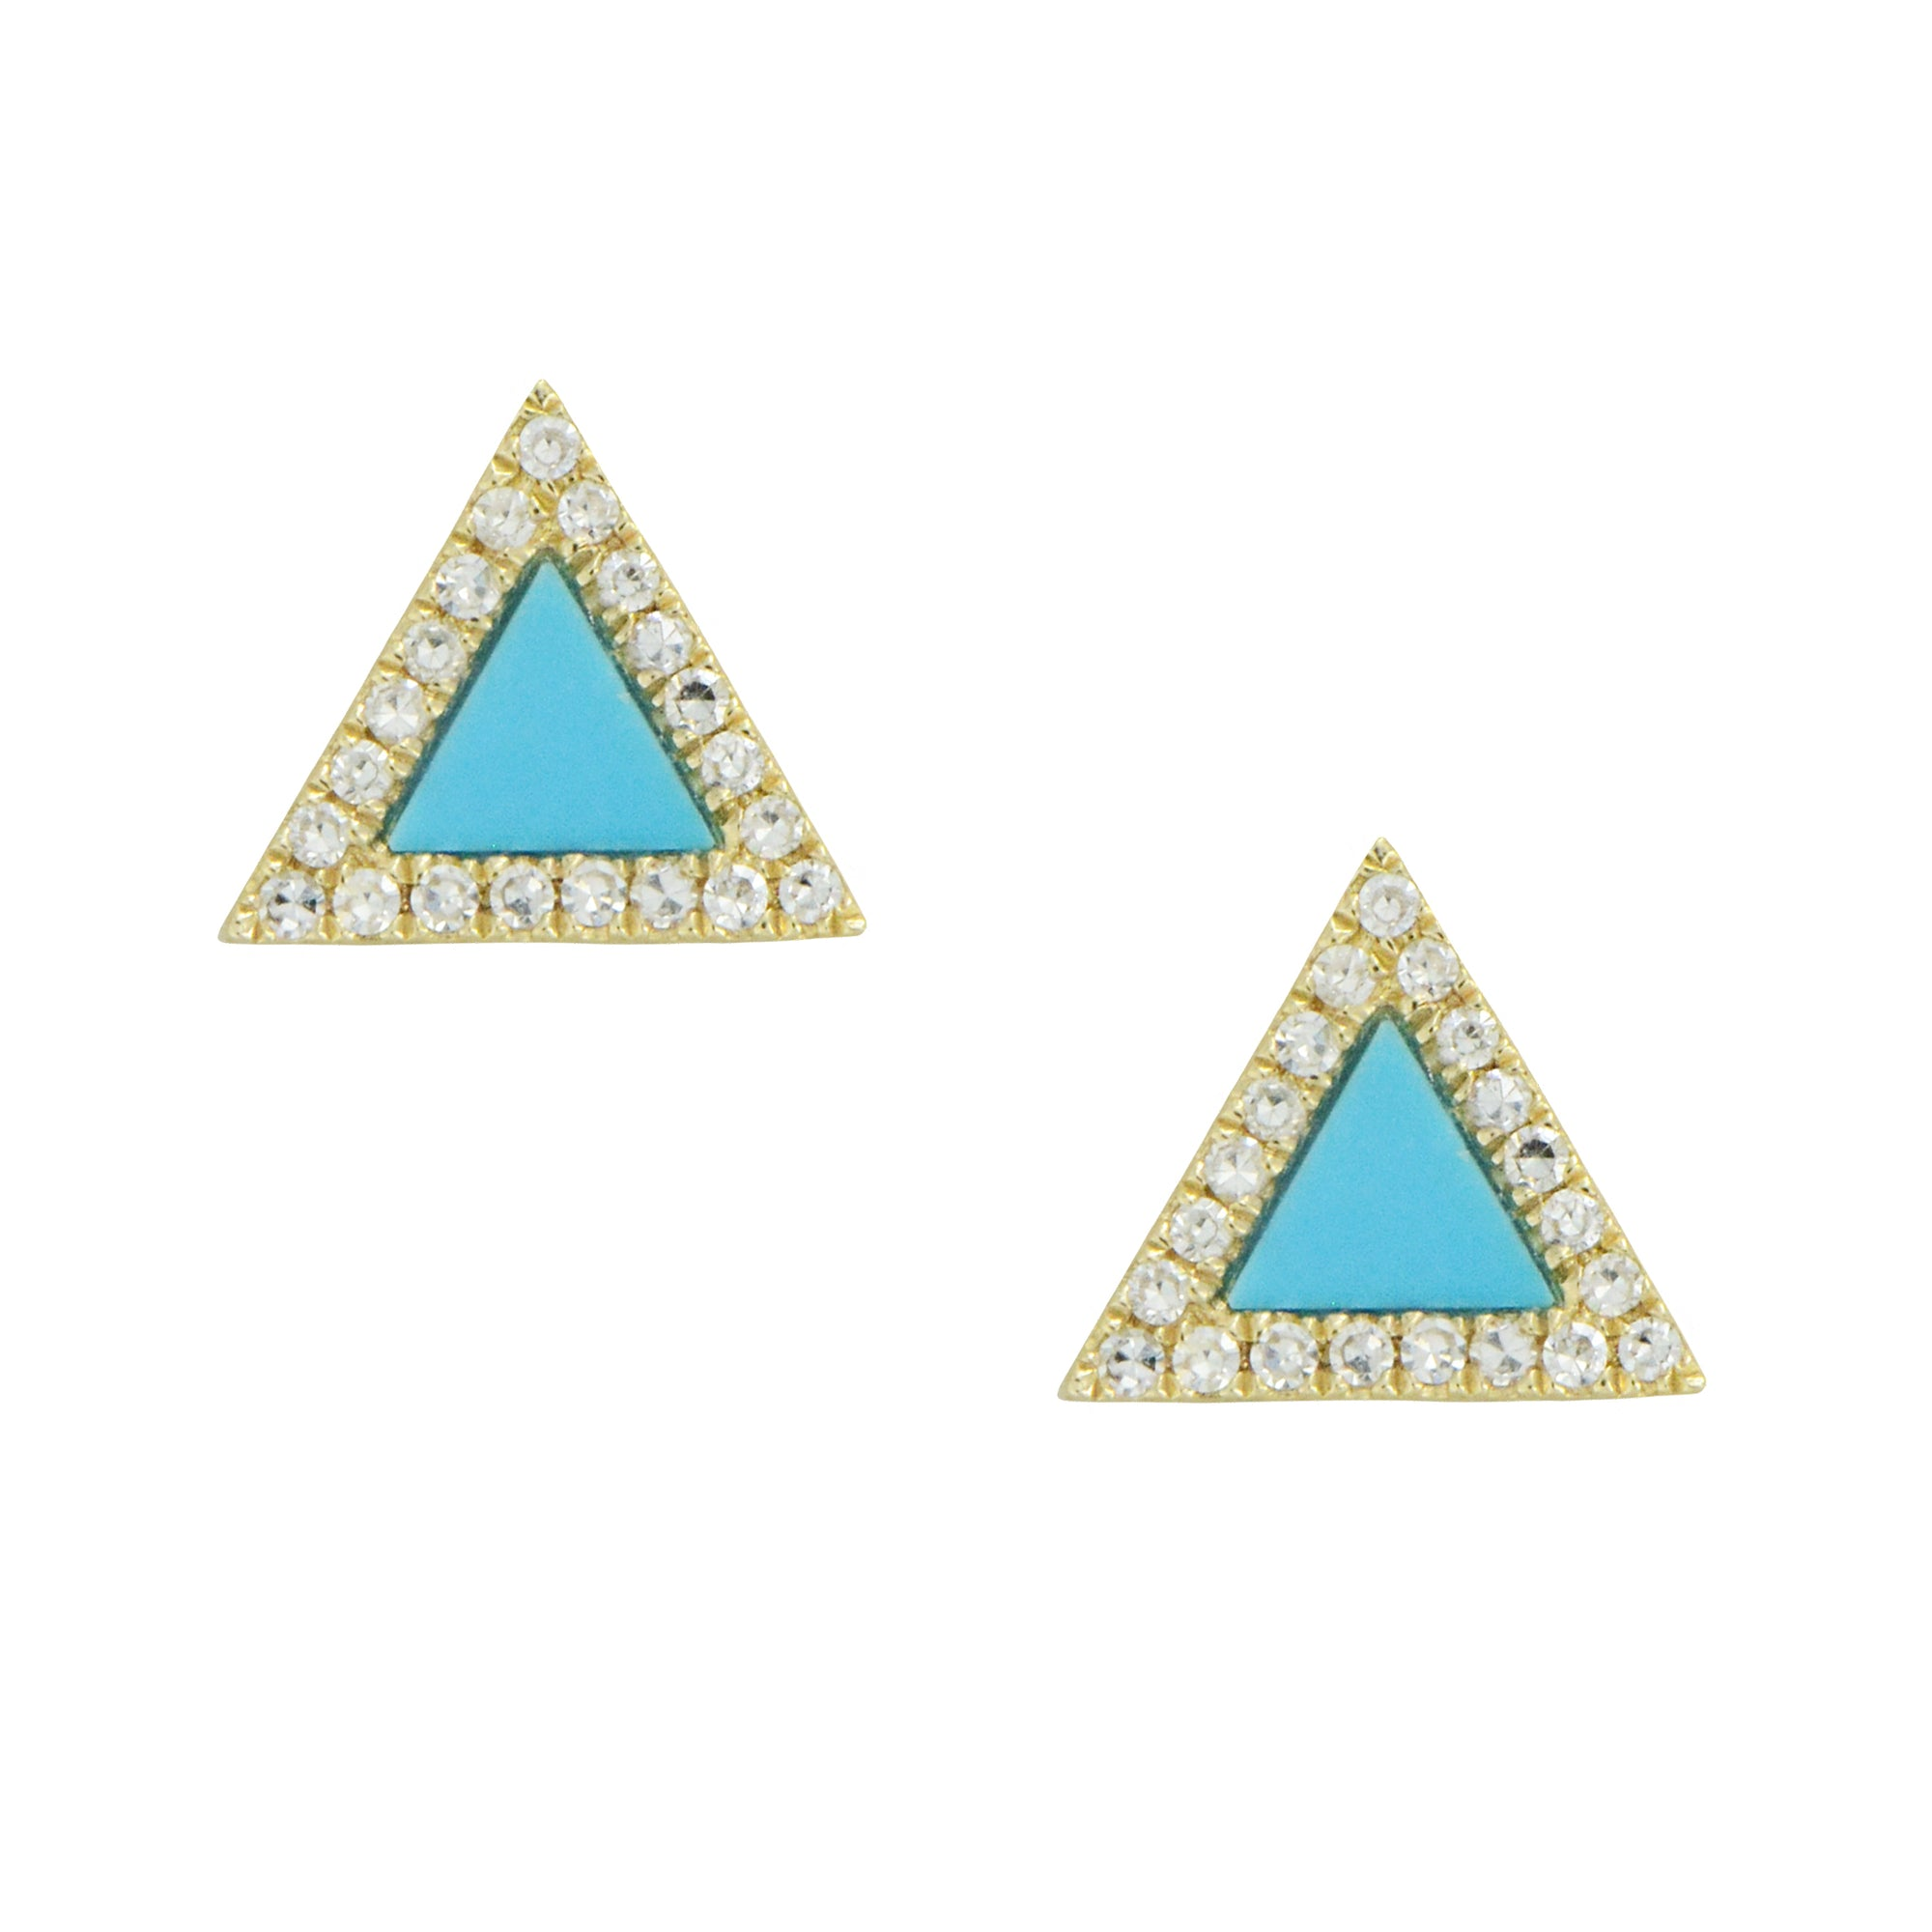 Triangle Turquoise Diamond Stud Earrings in 14k Gold